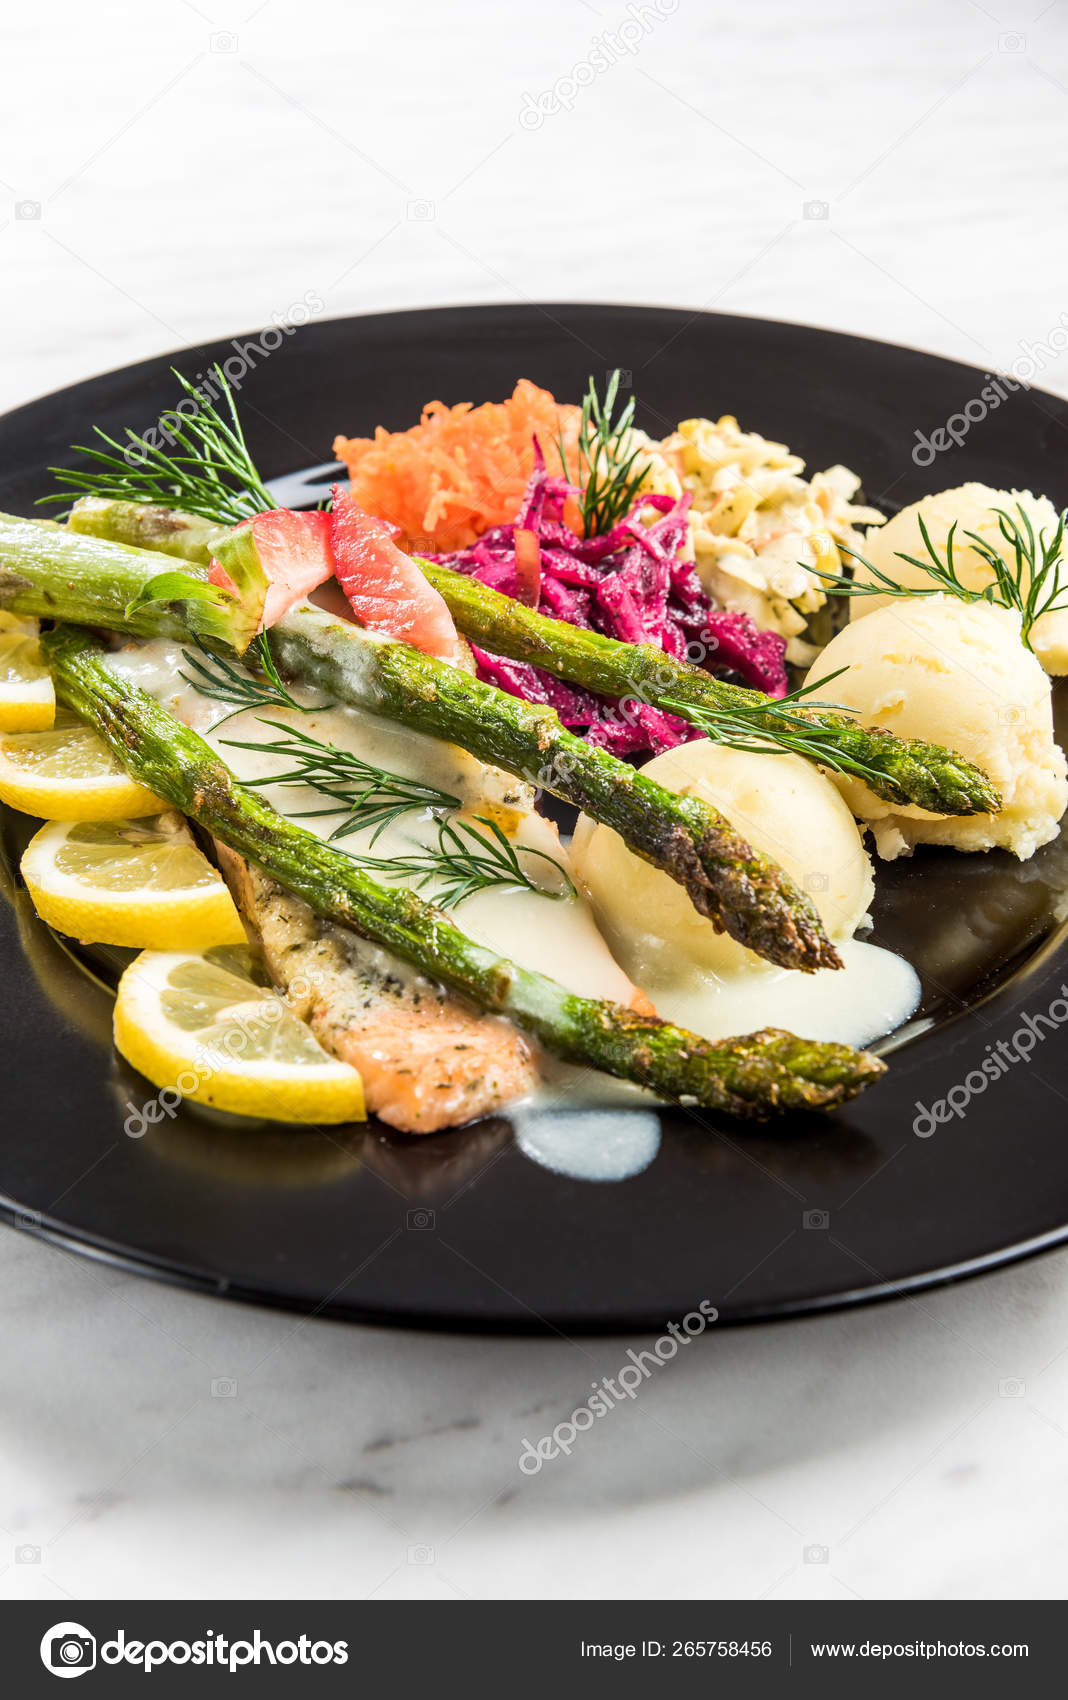 Grilled Salmon With Asparagus And Potatoes Restaurant